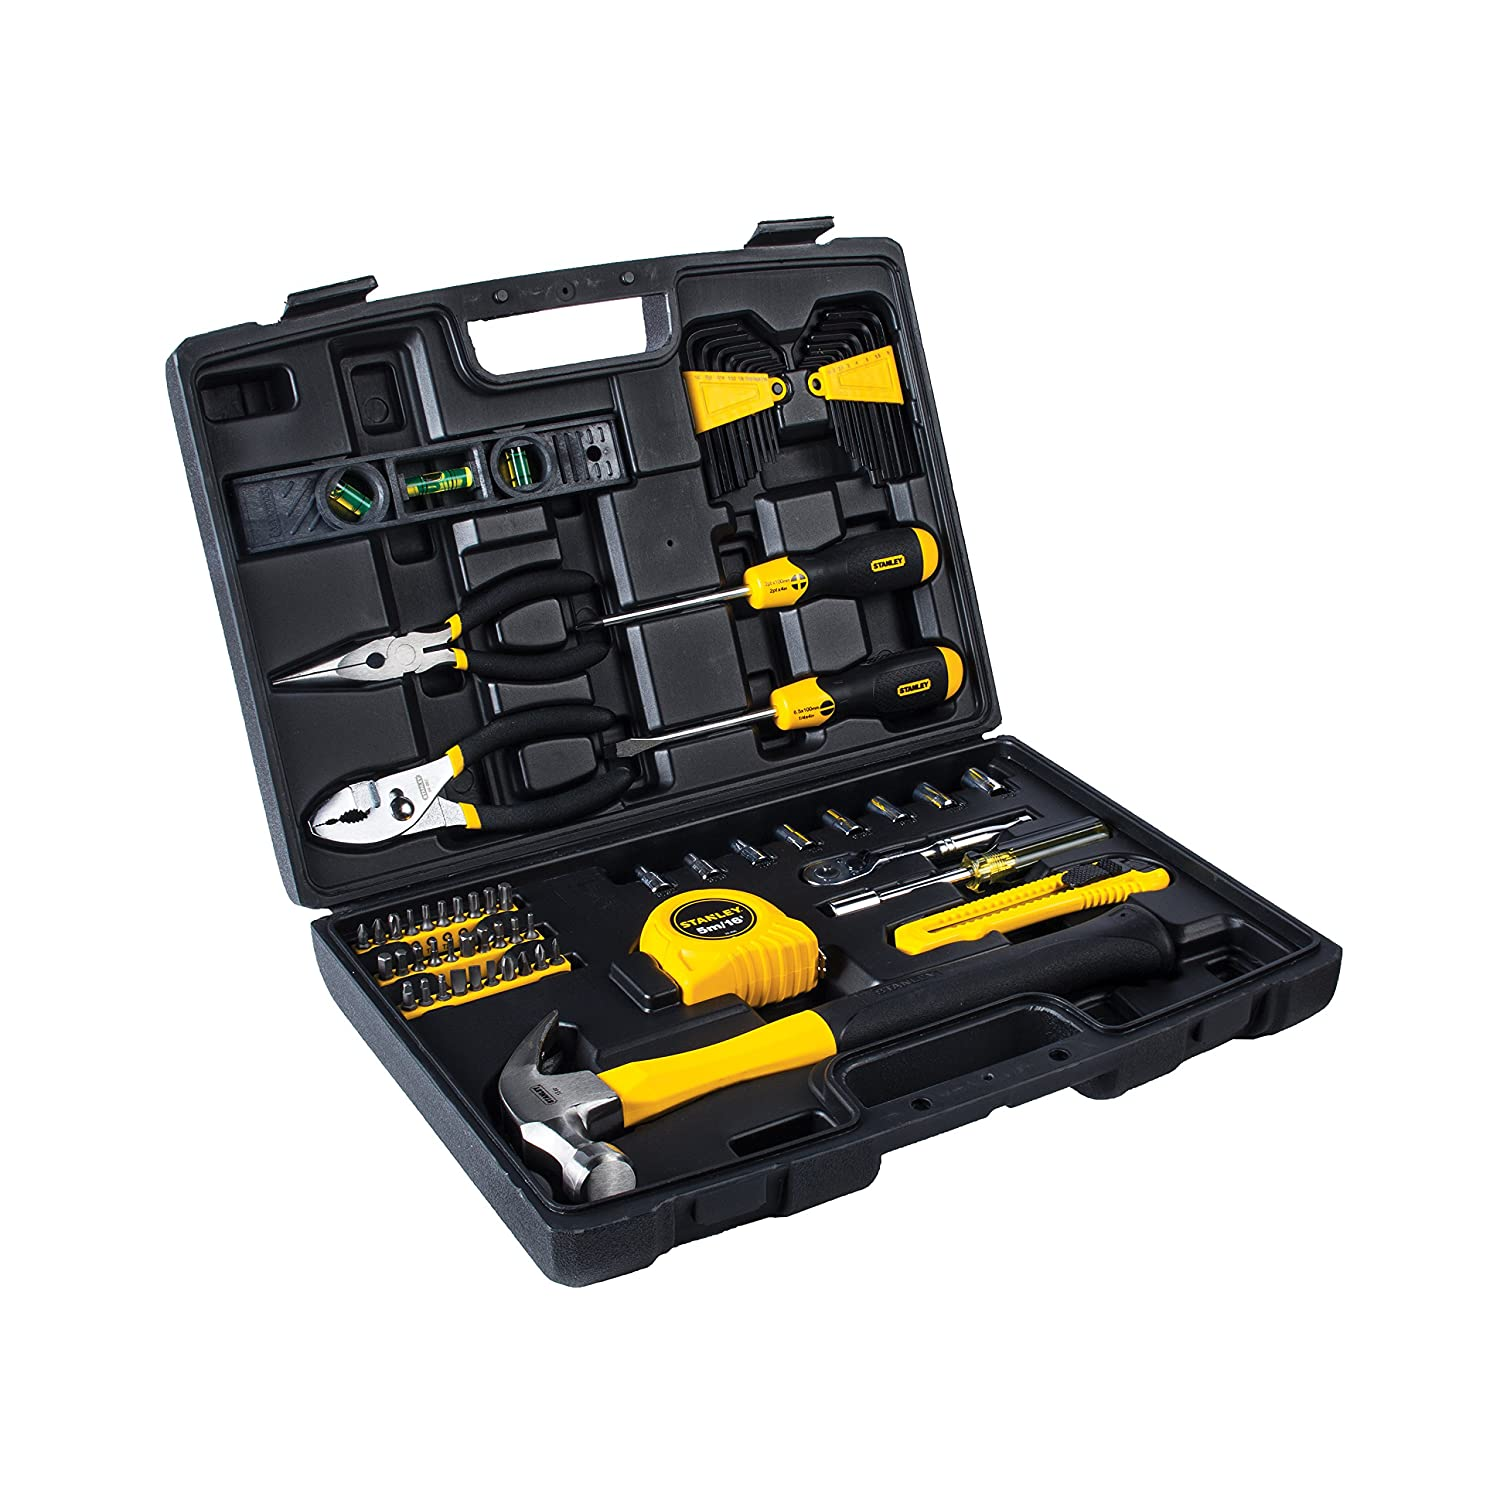 47812f1bcbf STANLEY 94-248 65 Piece Homeowner s DIY Tool Kit - Hand Tool Sets -  Amazon.com